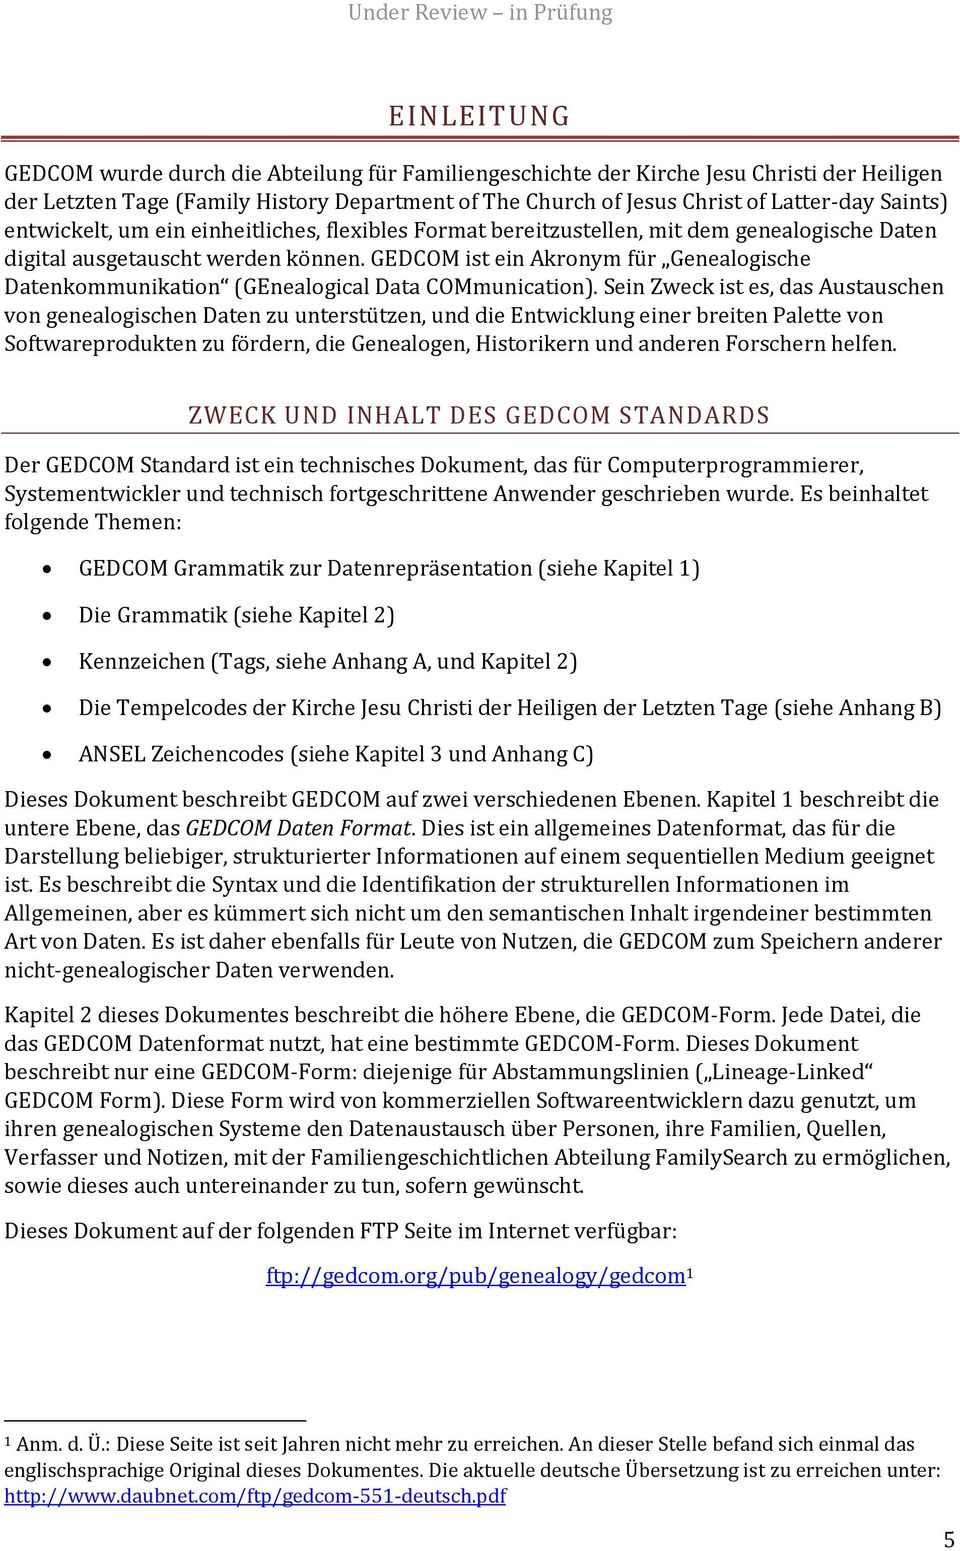 GEDCOM ist ein Akronym für Genealogische Datenkommunikation (GEnealogical Data COMmunication).